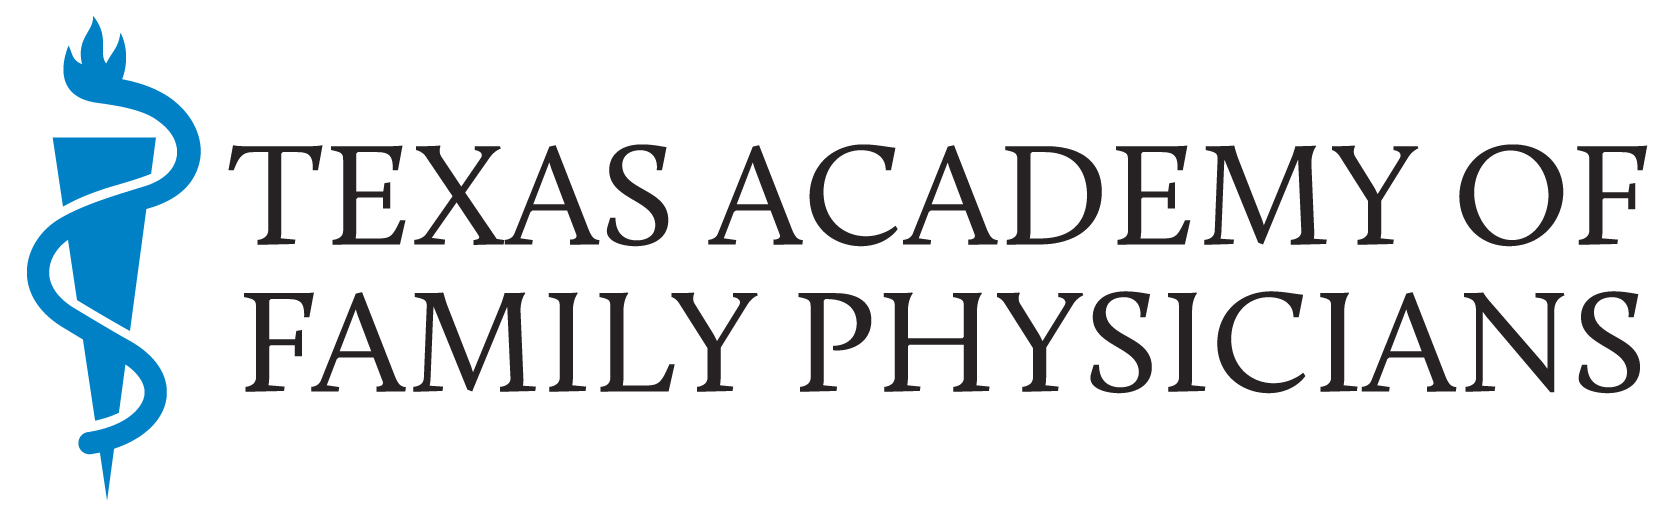 Texas Academy of Family Physicians